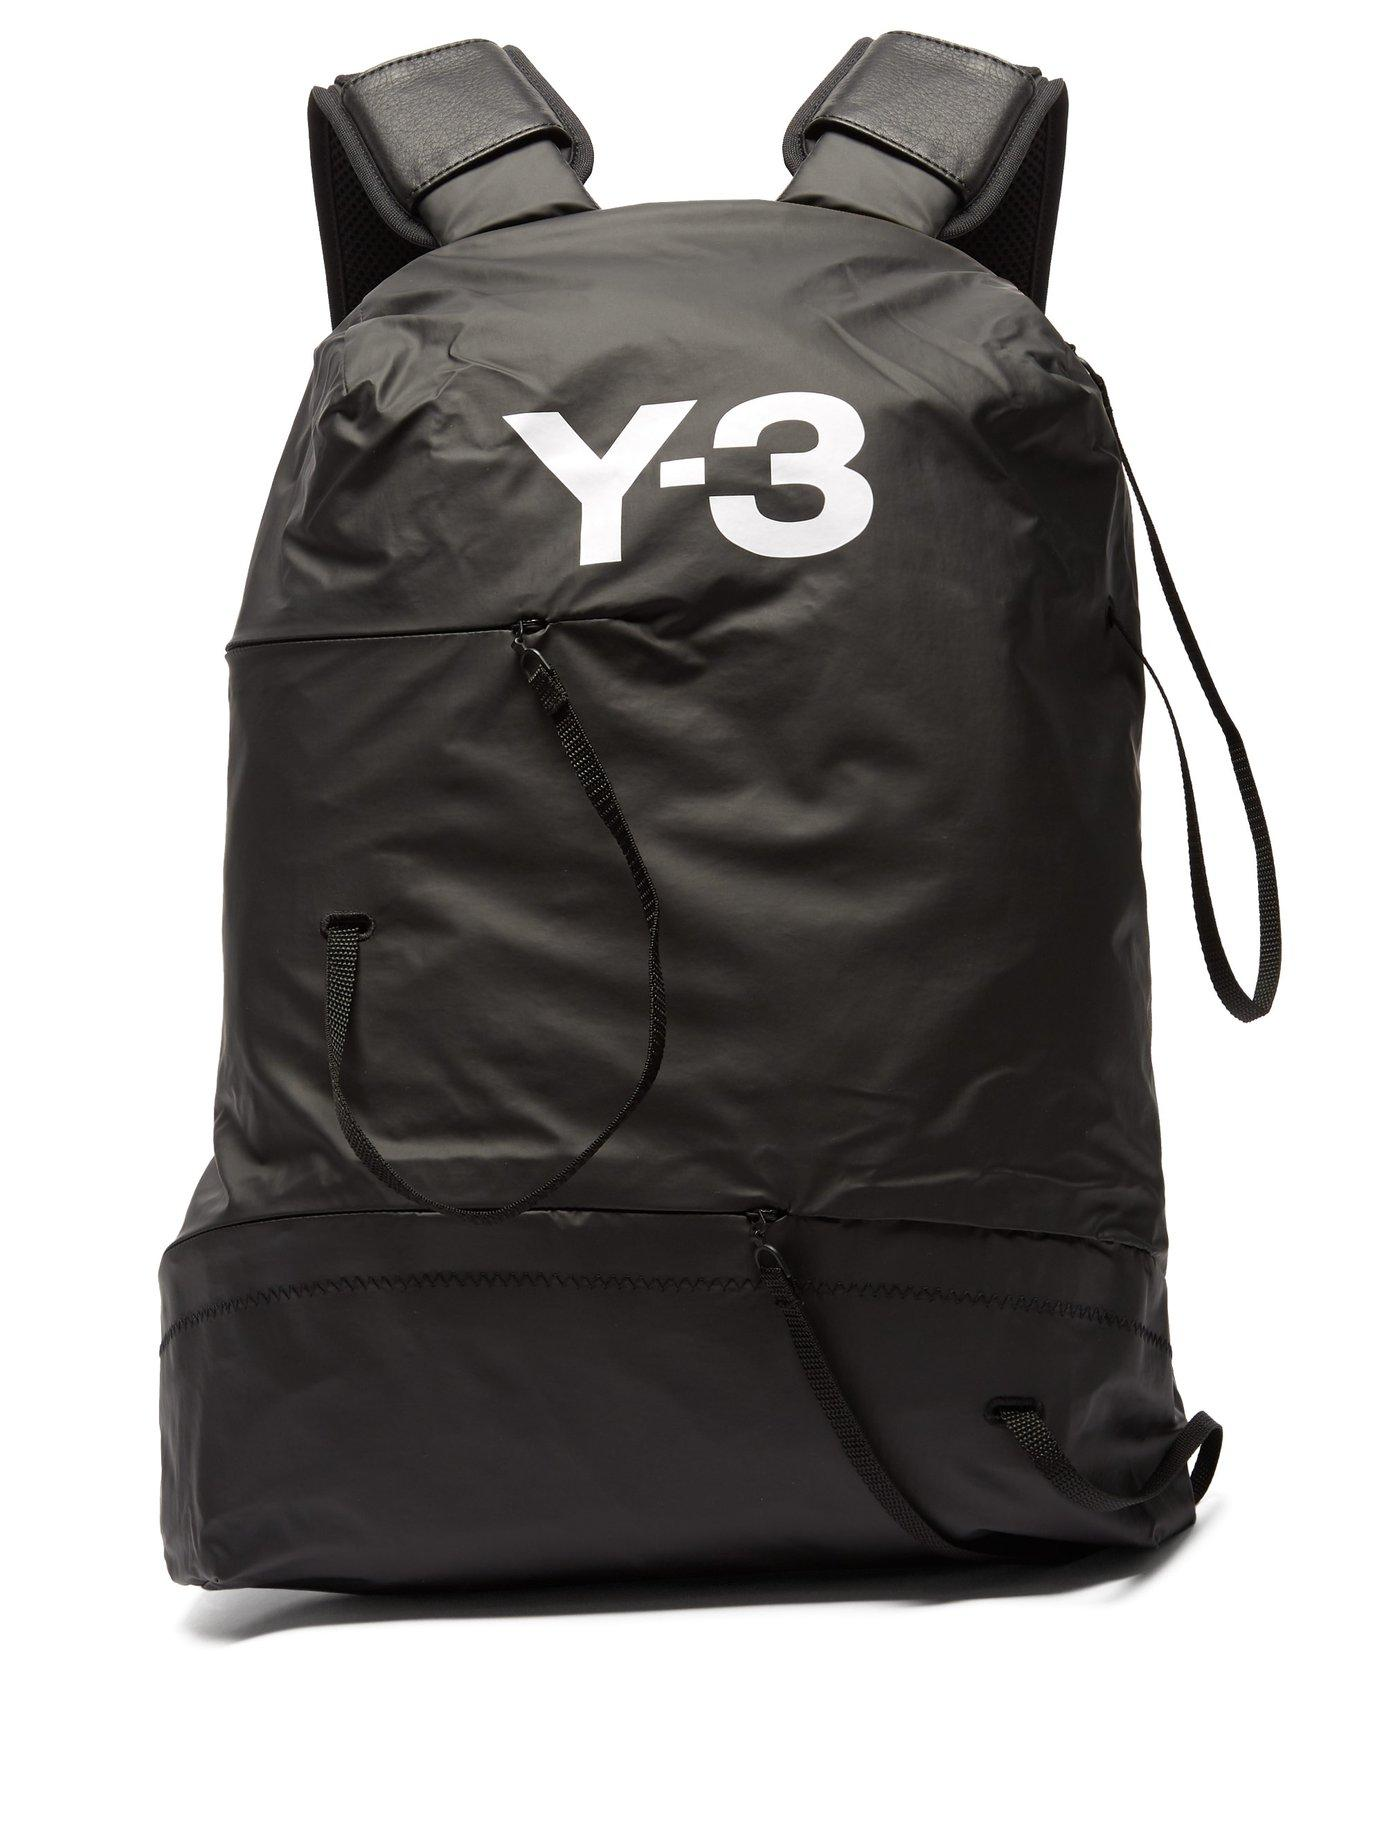 b6c4abb791f0 Lyst - Y-3 Bungee Technical Backpack in Black for Men